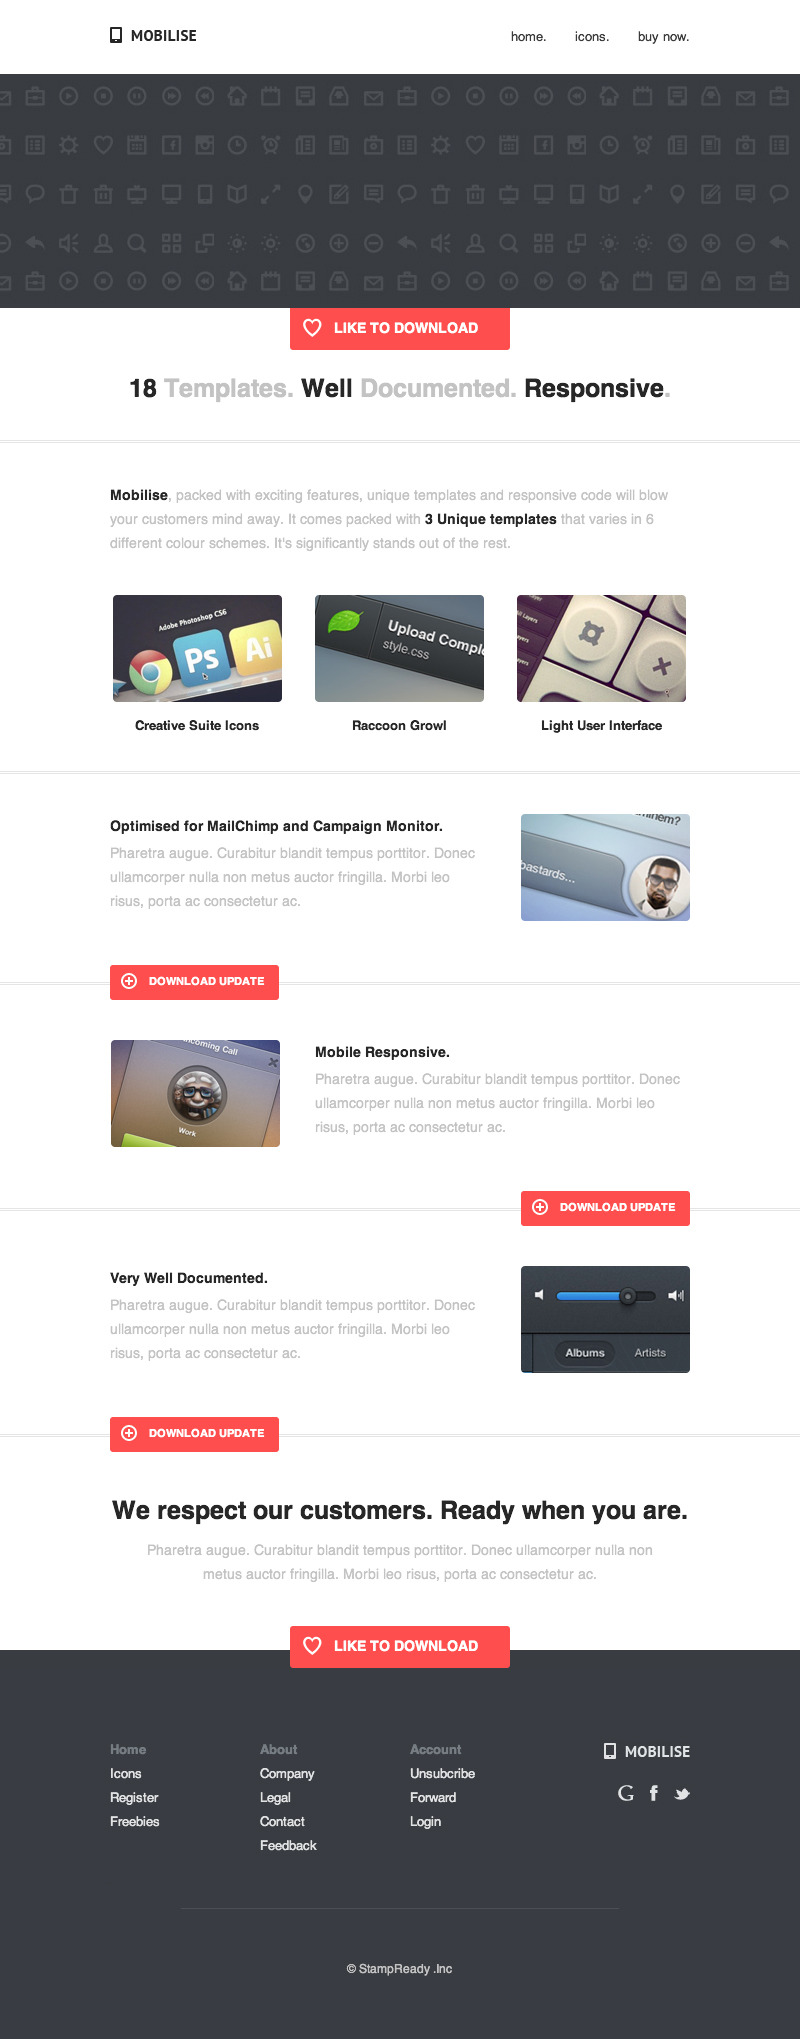 Mobilise - Responsive E-mail Template